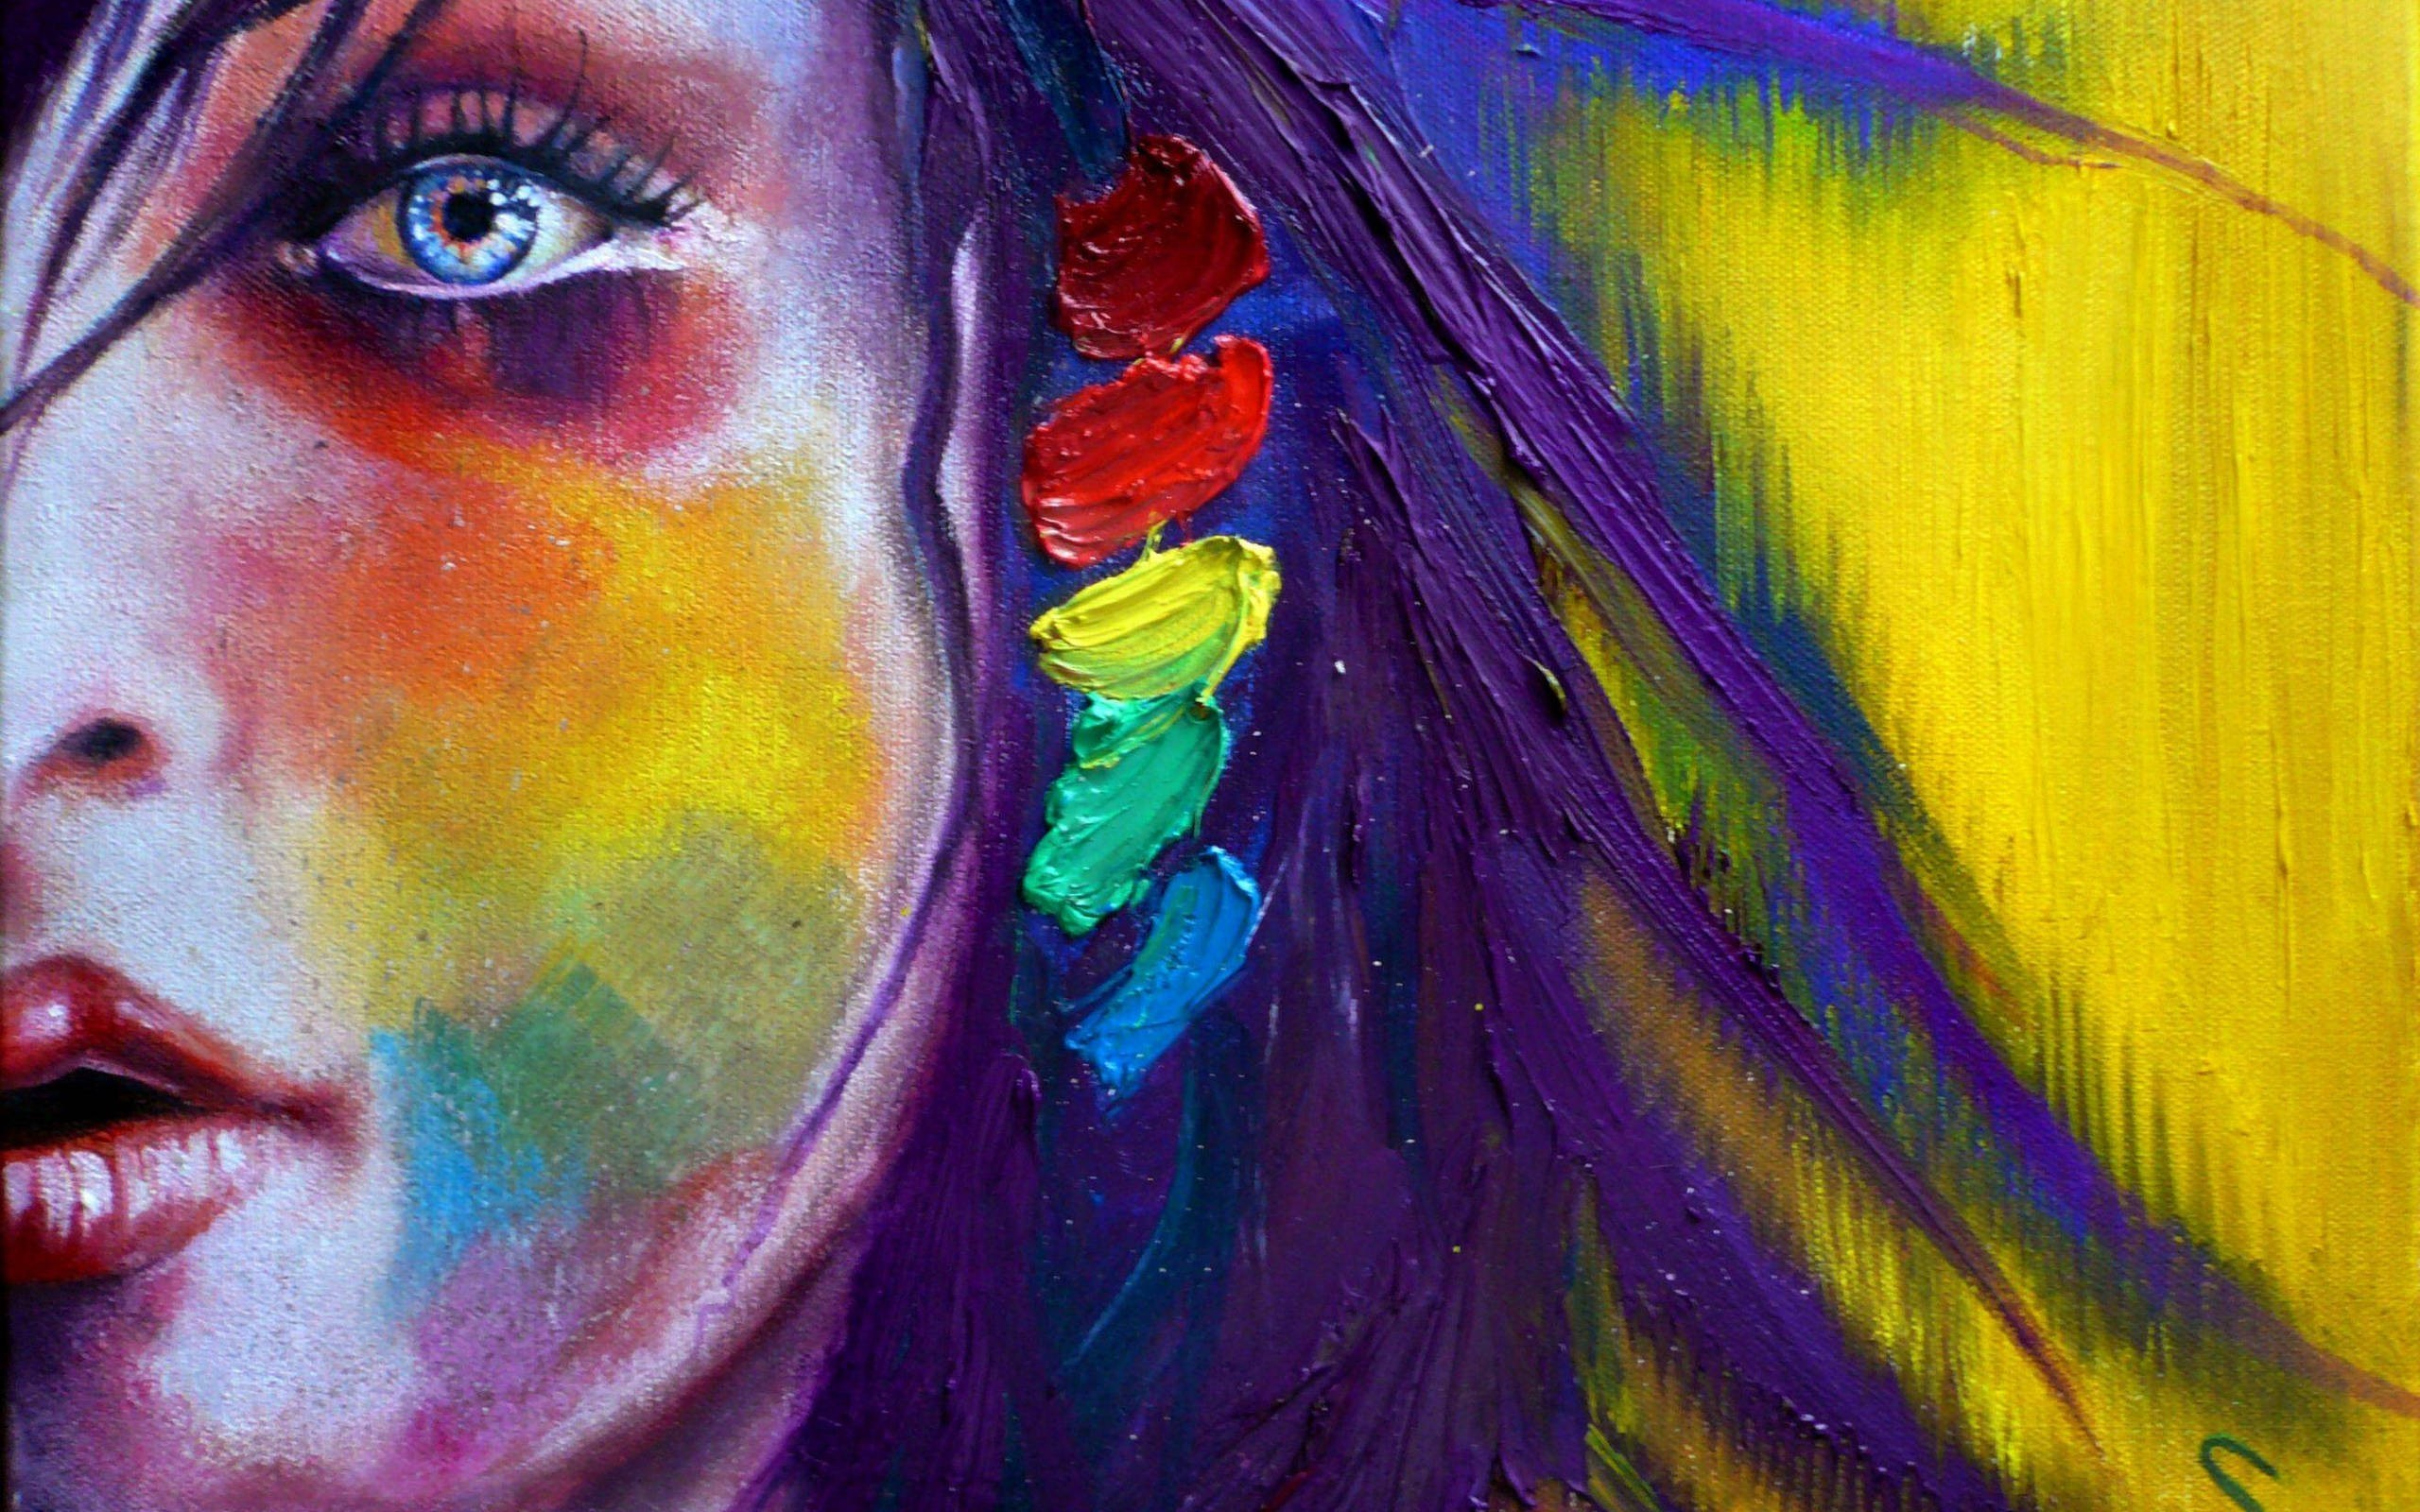 Paint Rainbow Girl Wallpapers: Fondos De Pantalla 2560x1600 Pintura Descargar Imagenes